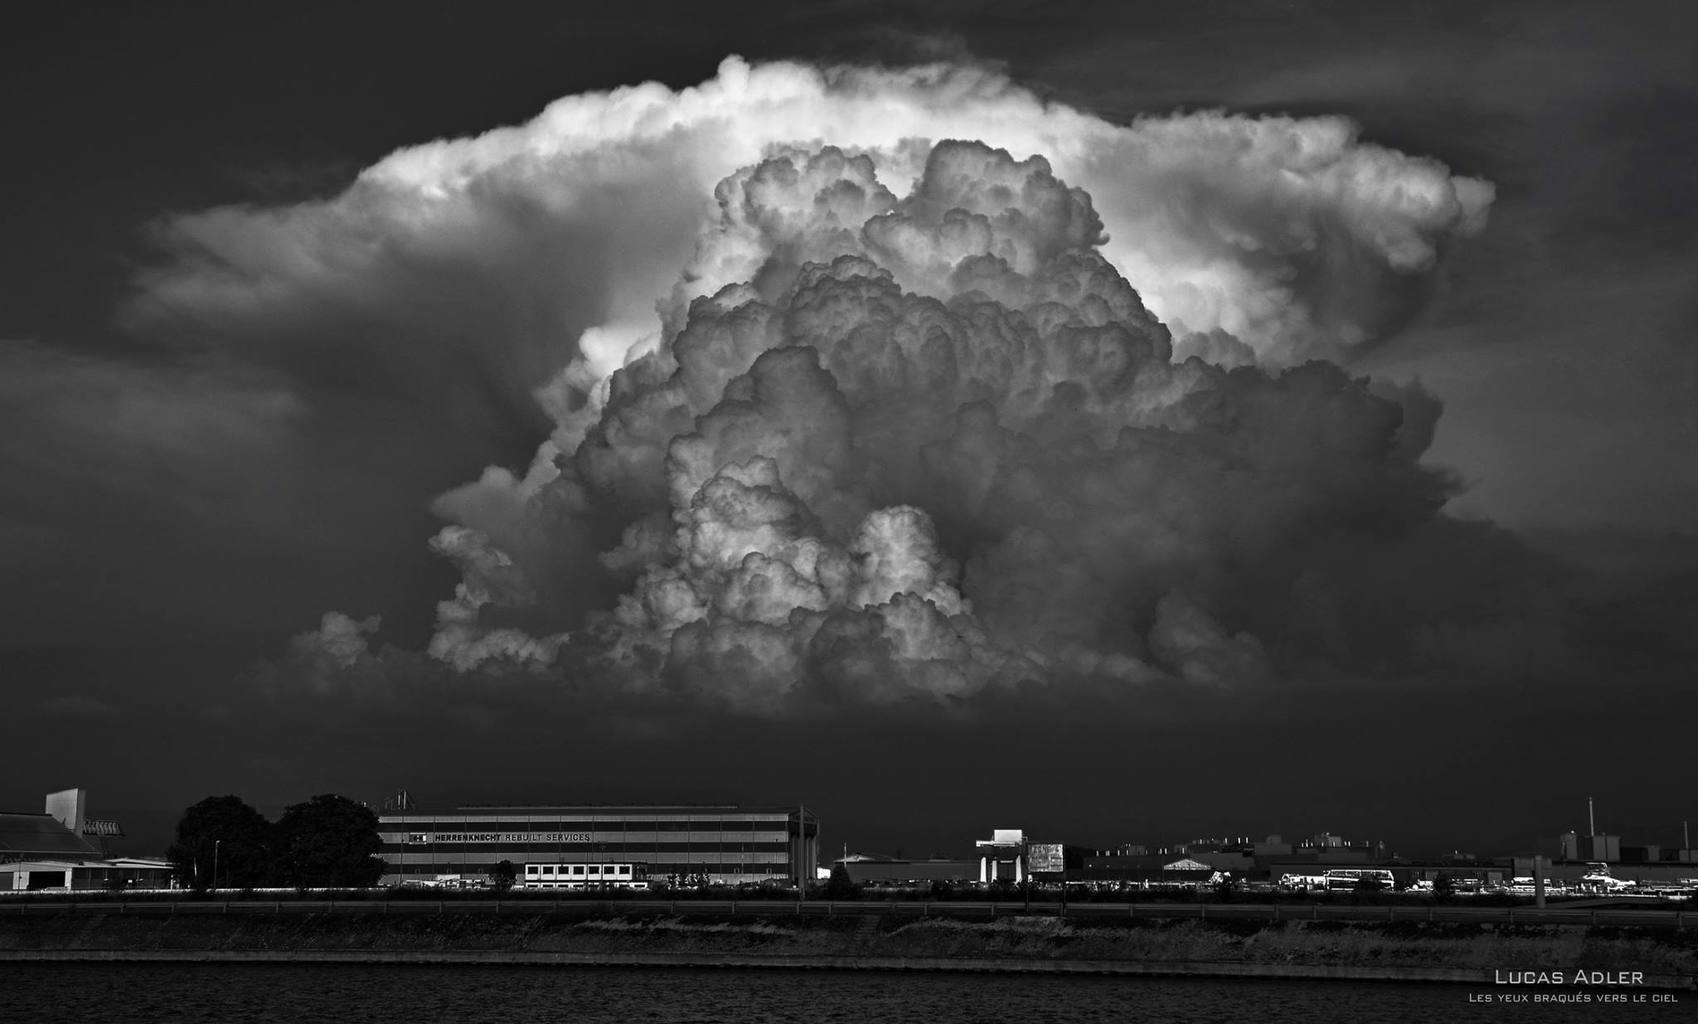 Convective eruption above the Black Forest (Germany) June 2014